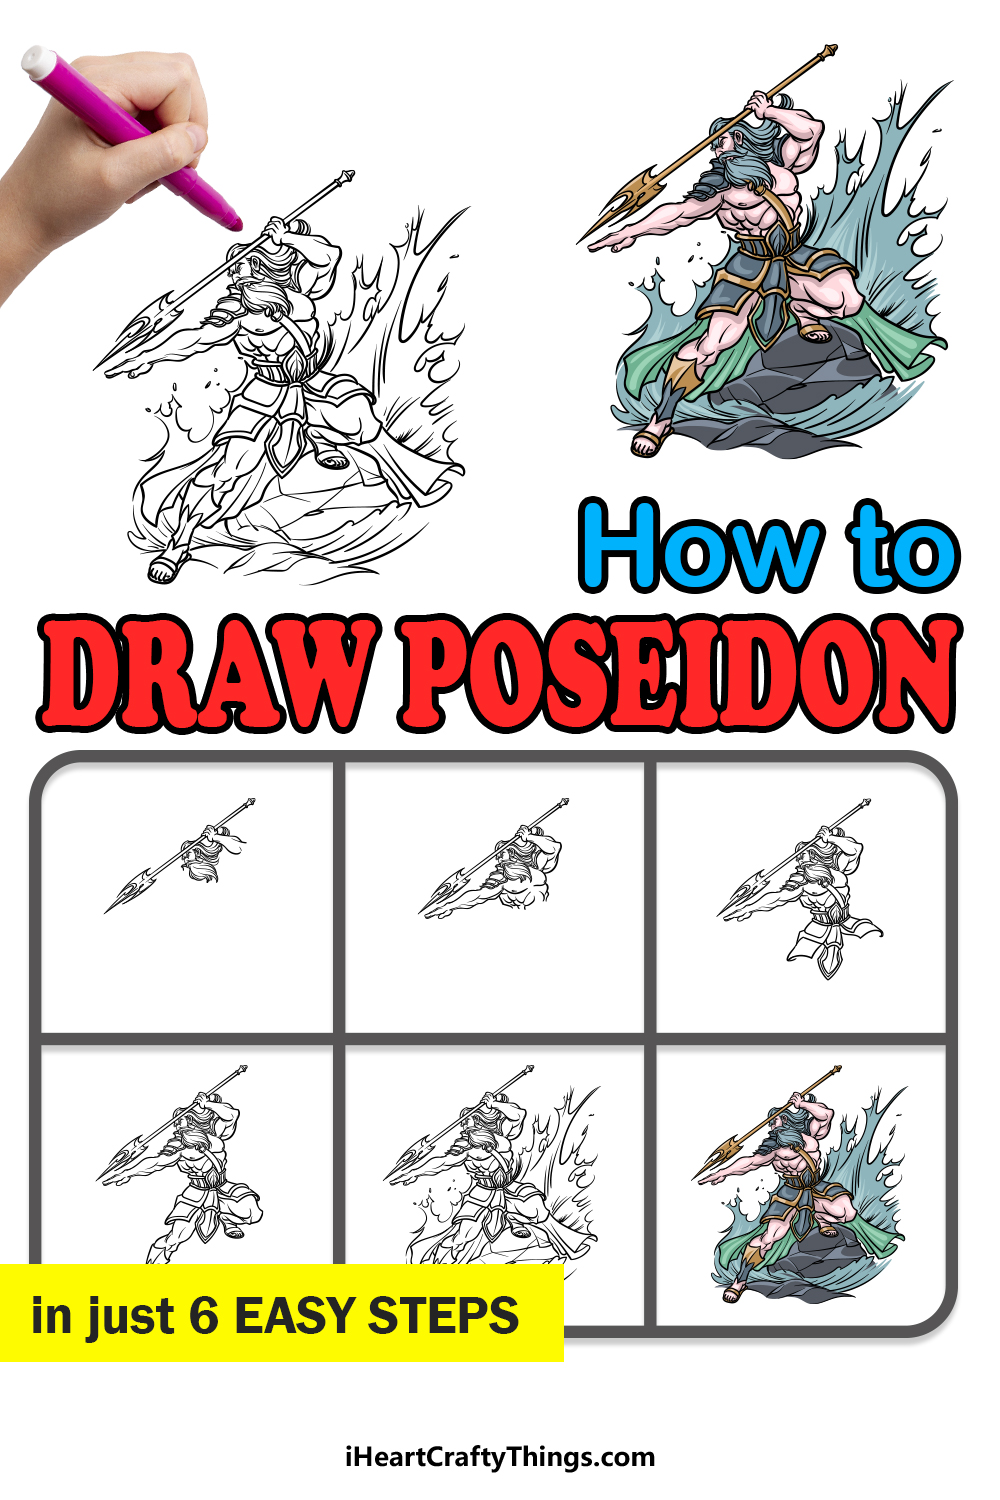 how to draw Poseidon in 6 easy steps